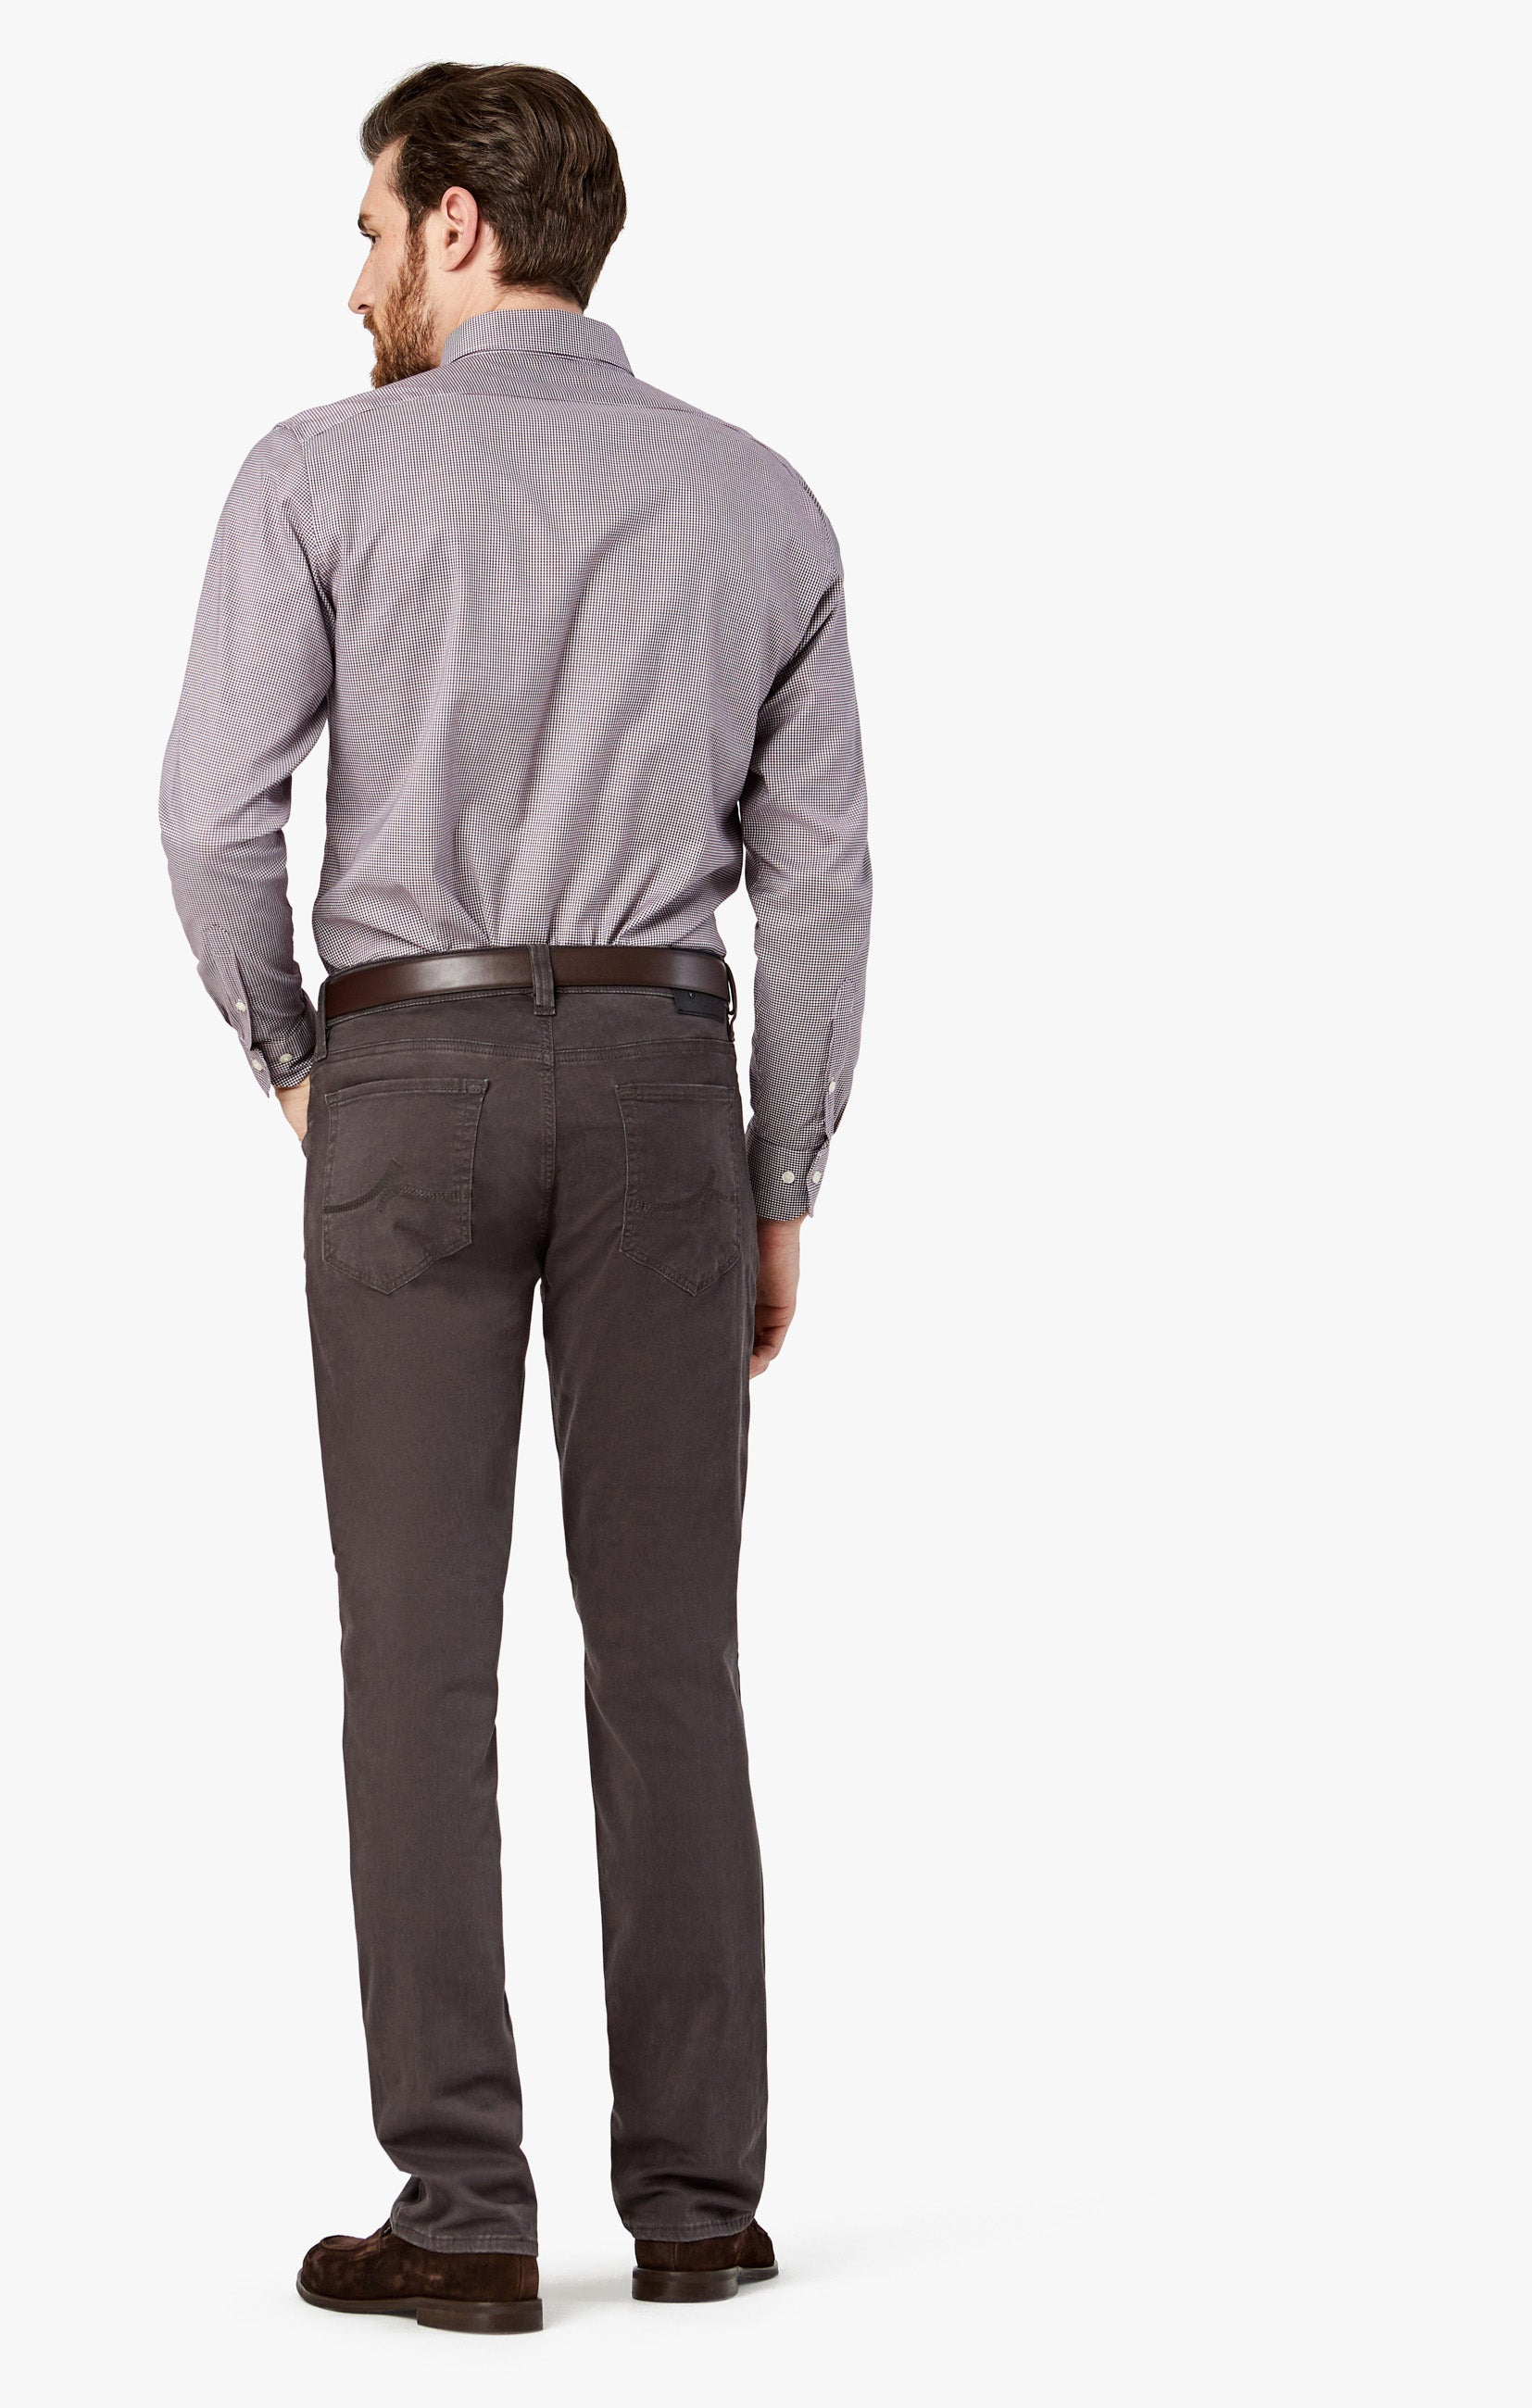 Charisma Relaxed Straight in Anthracite Twill Image 5